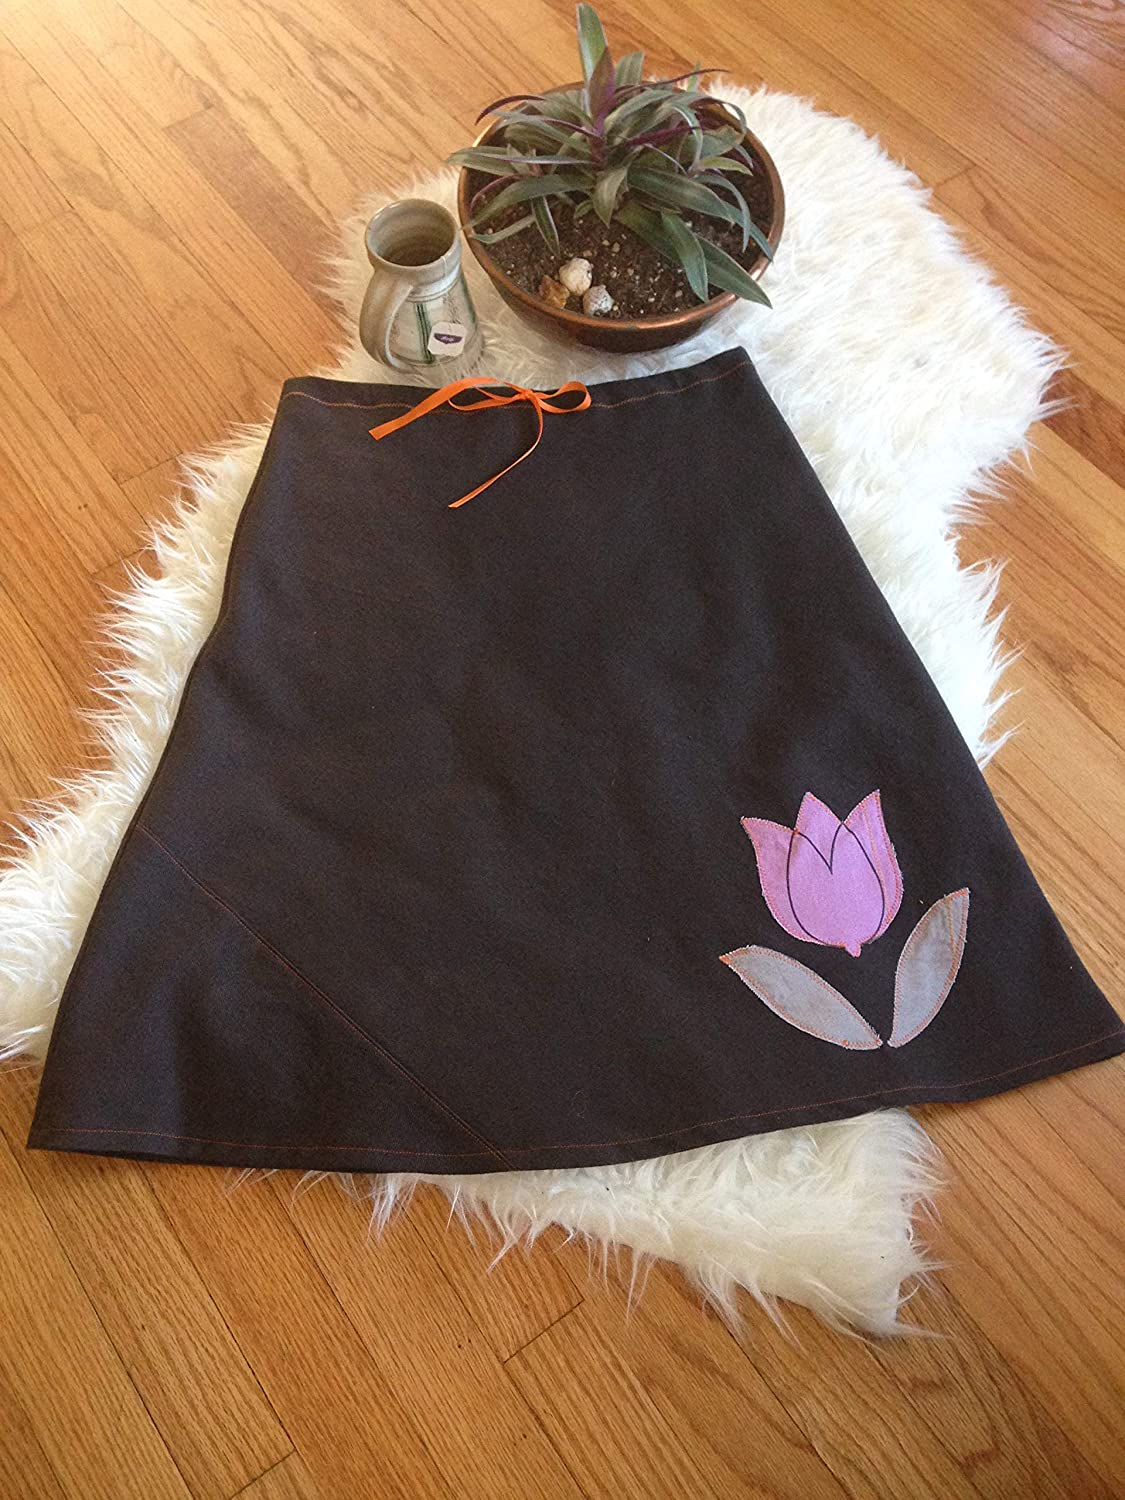 lone bloom skirt